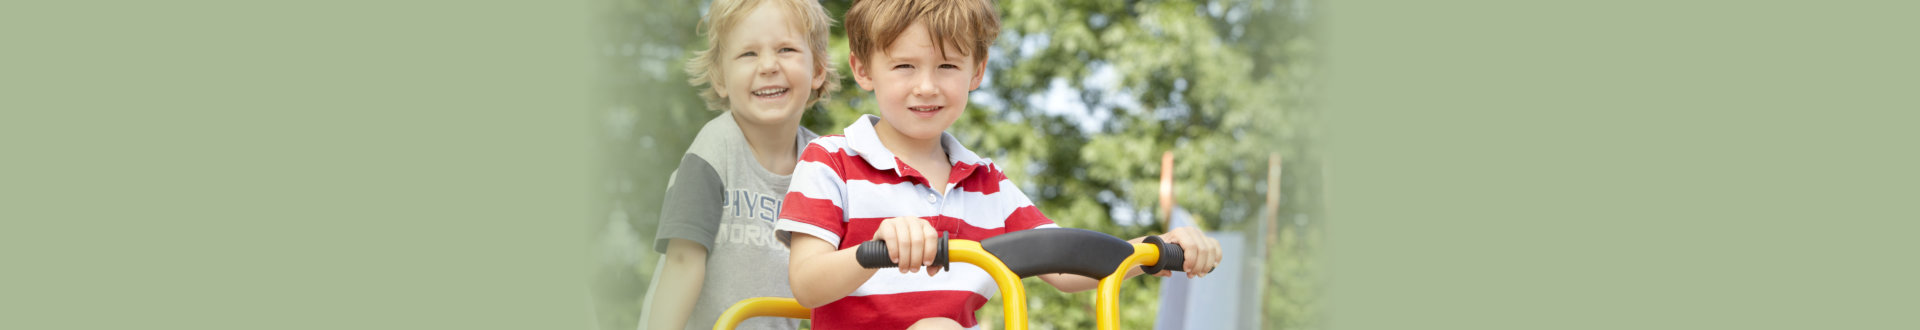 two boys riding a tricycle